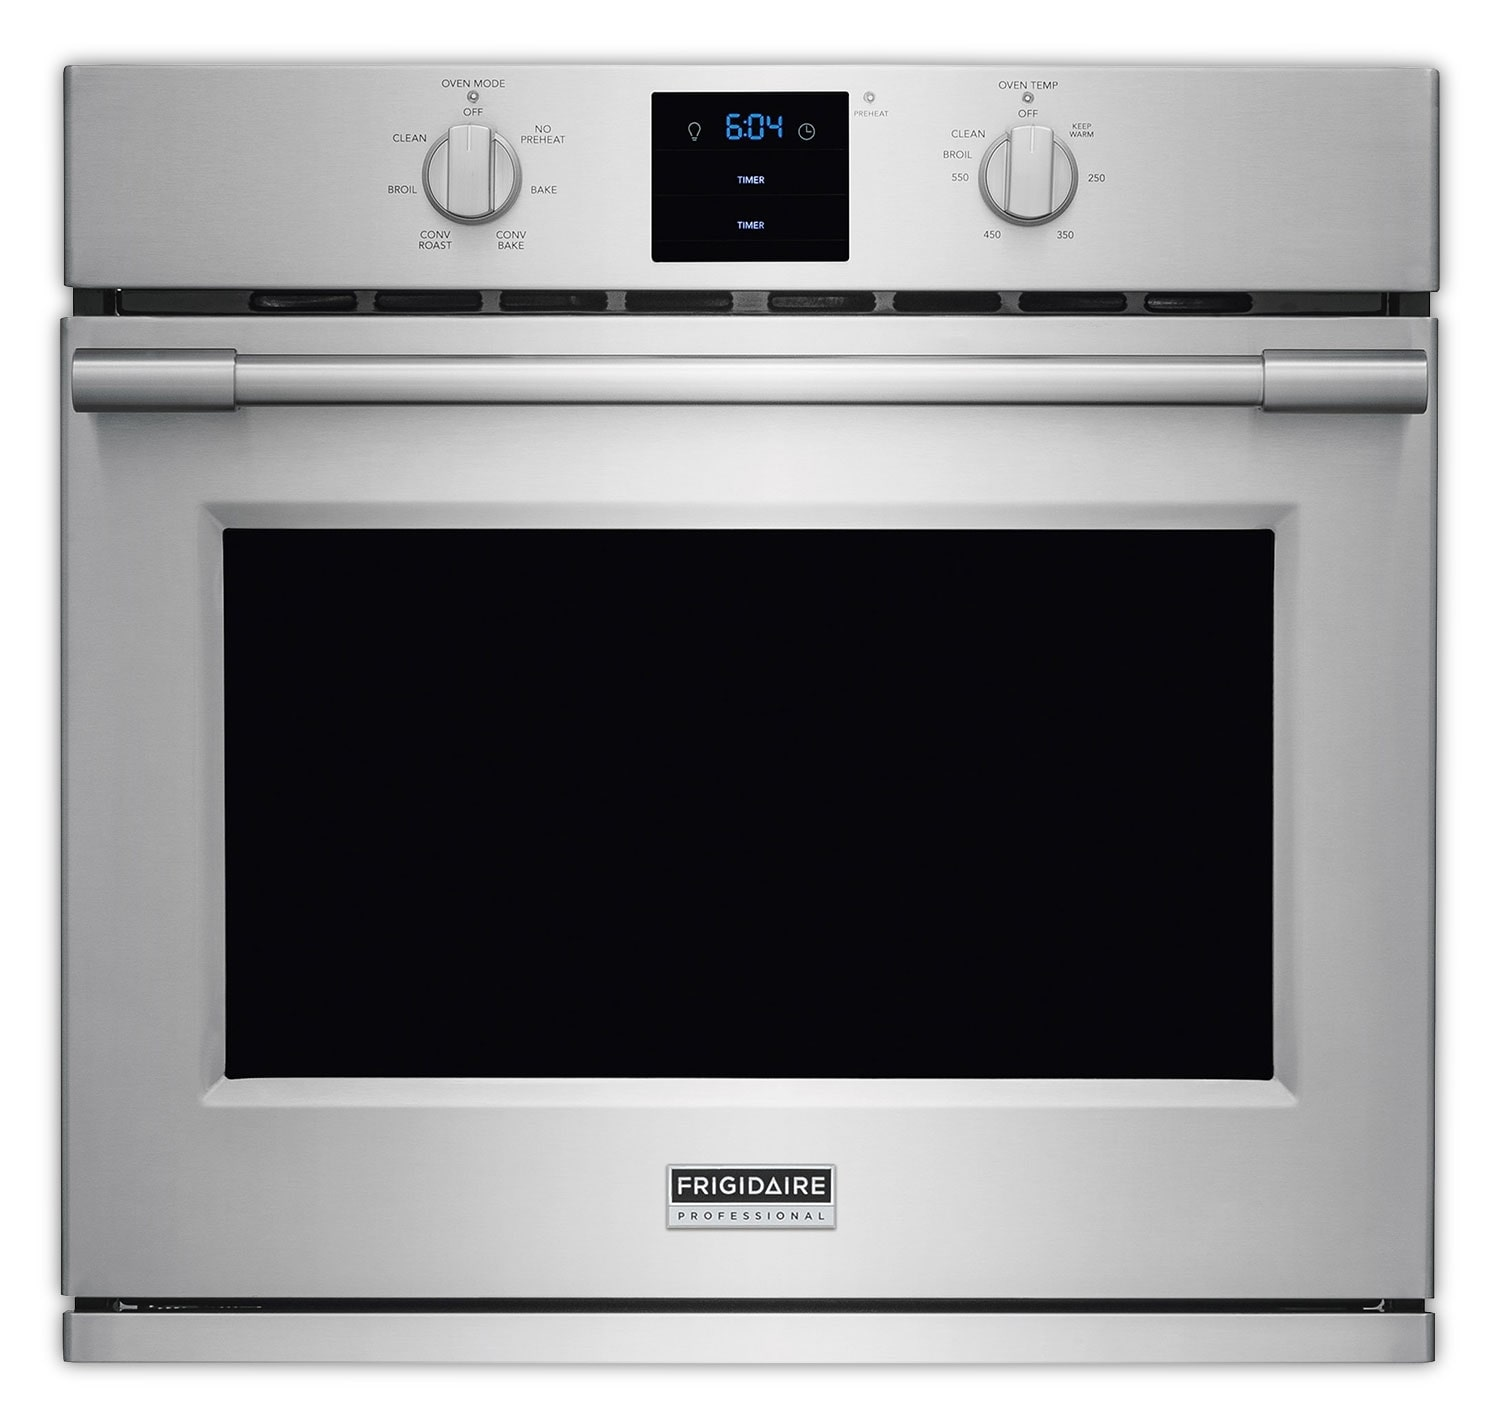 Frigidaire Professional Stainless Steel Convection Wall Oven - FPEW3077RF